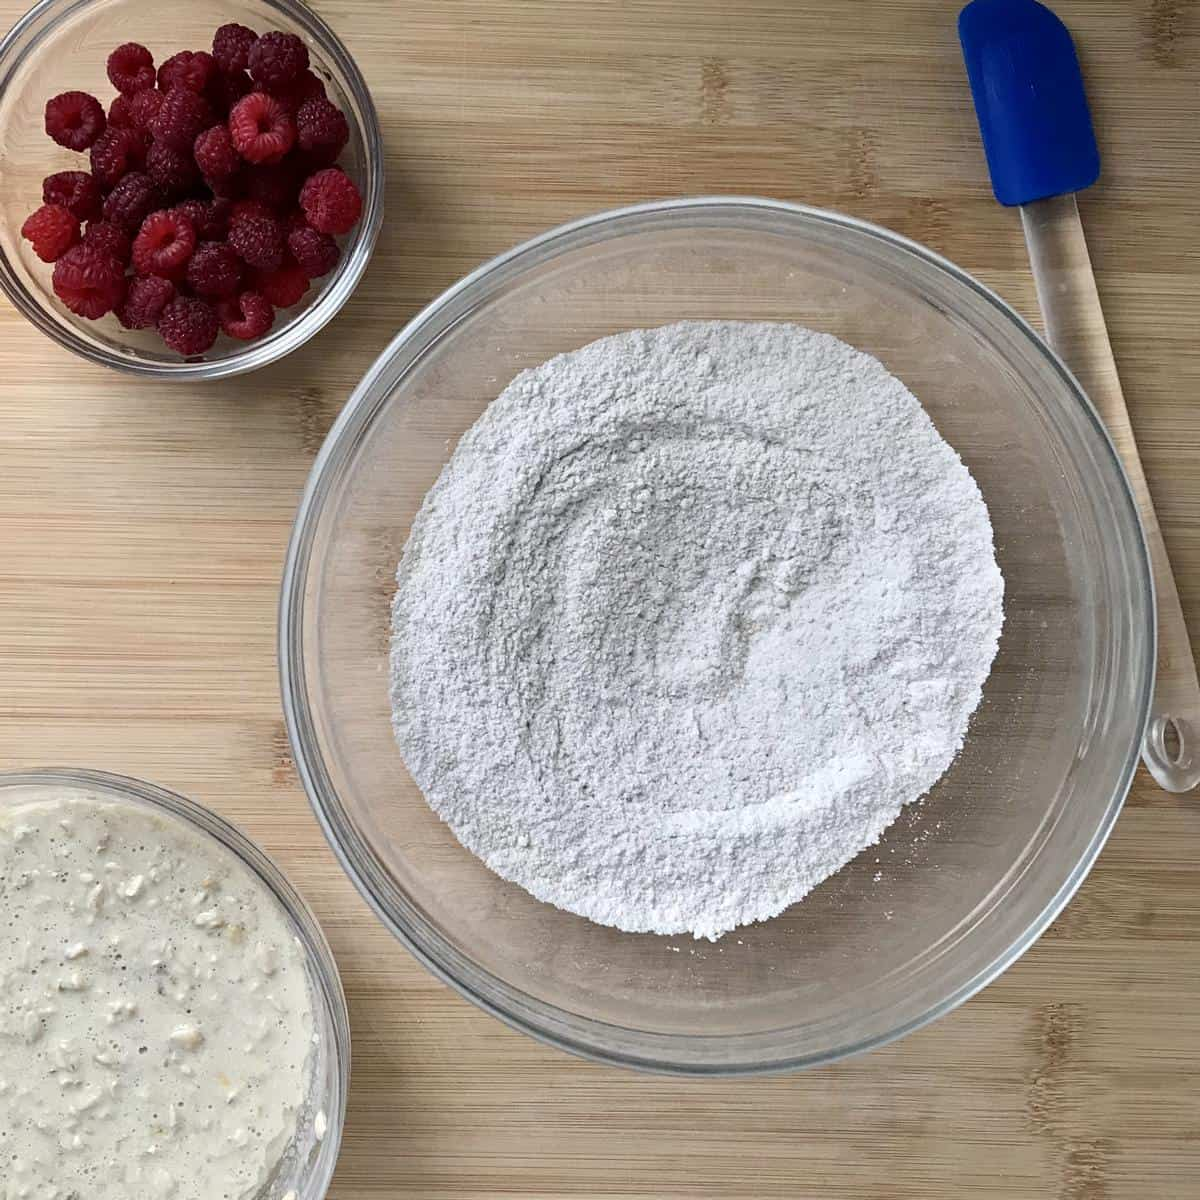 The raspberries along with the wet and dry ingredients in separate bowls.